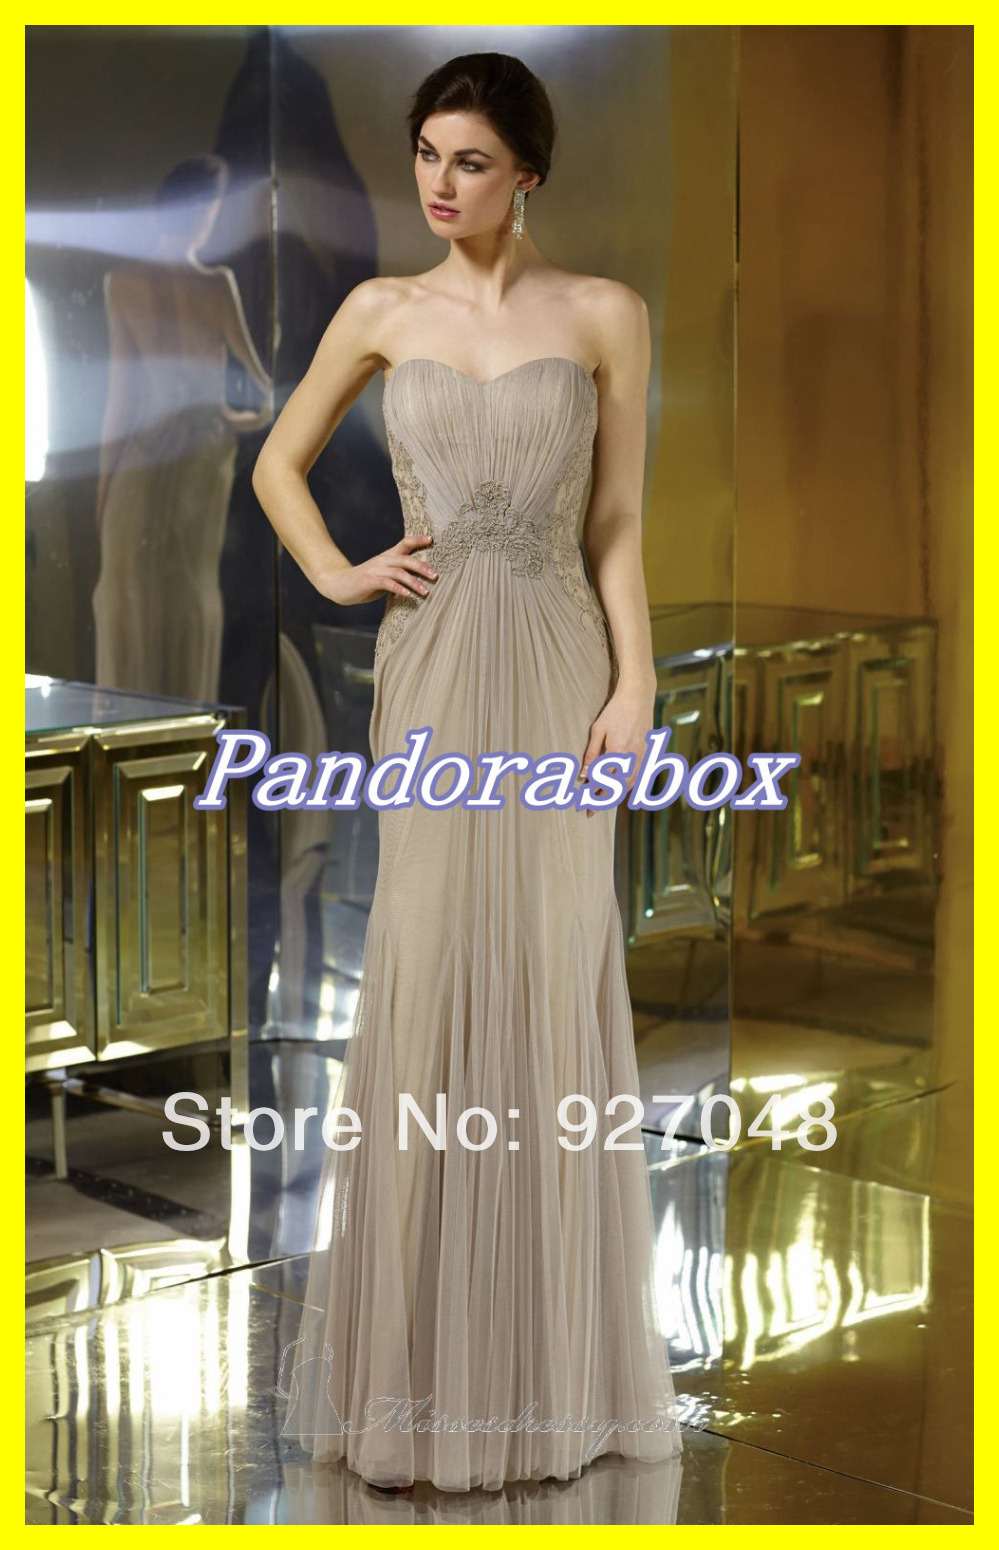 Elegant Bridesmaid Dresses Rochester Ny Wedding Dress Ideas With